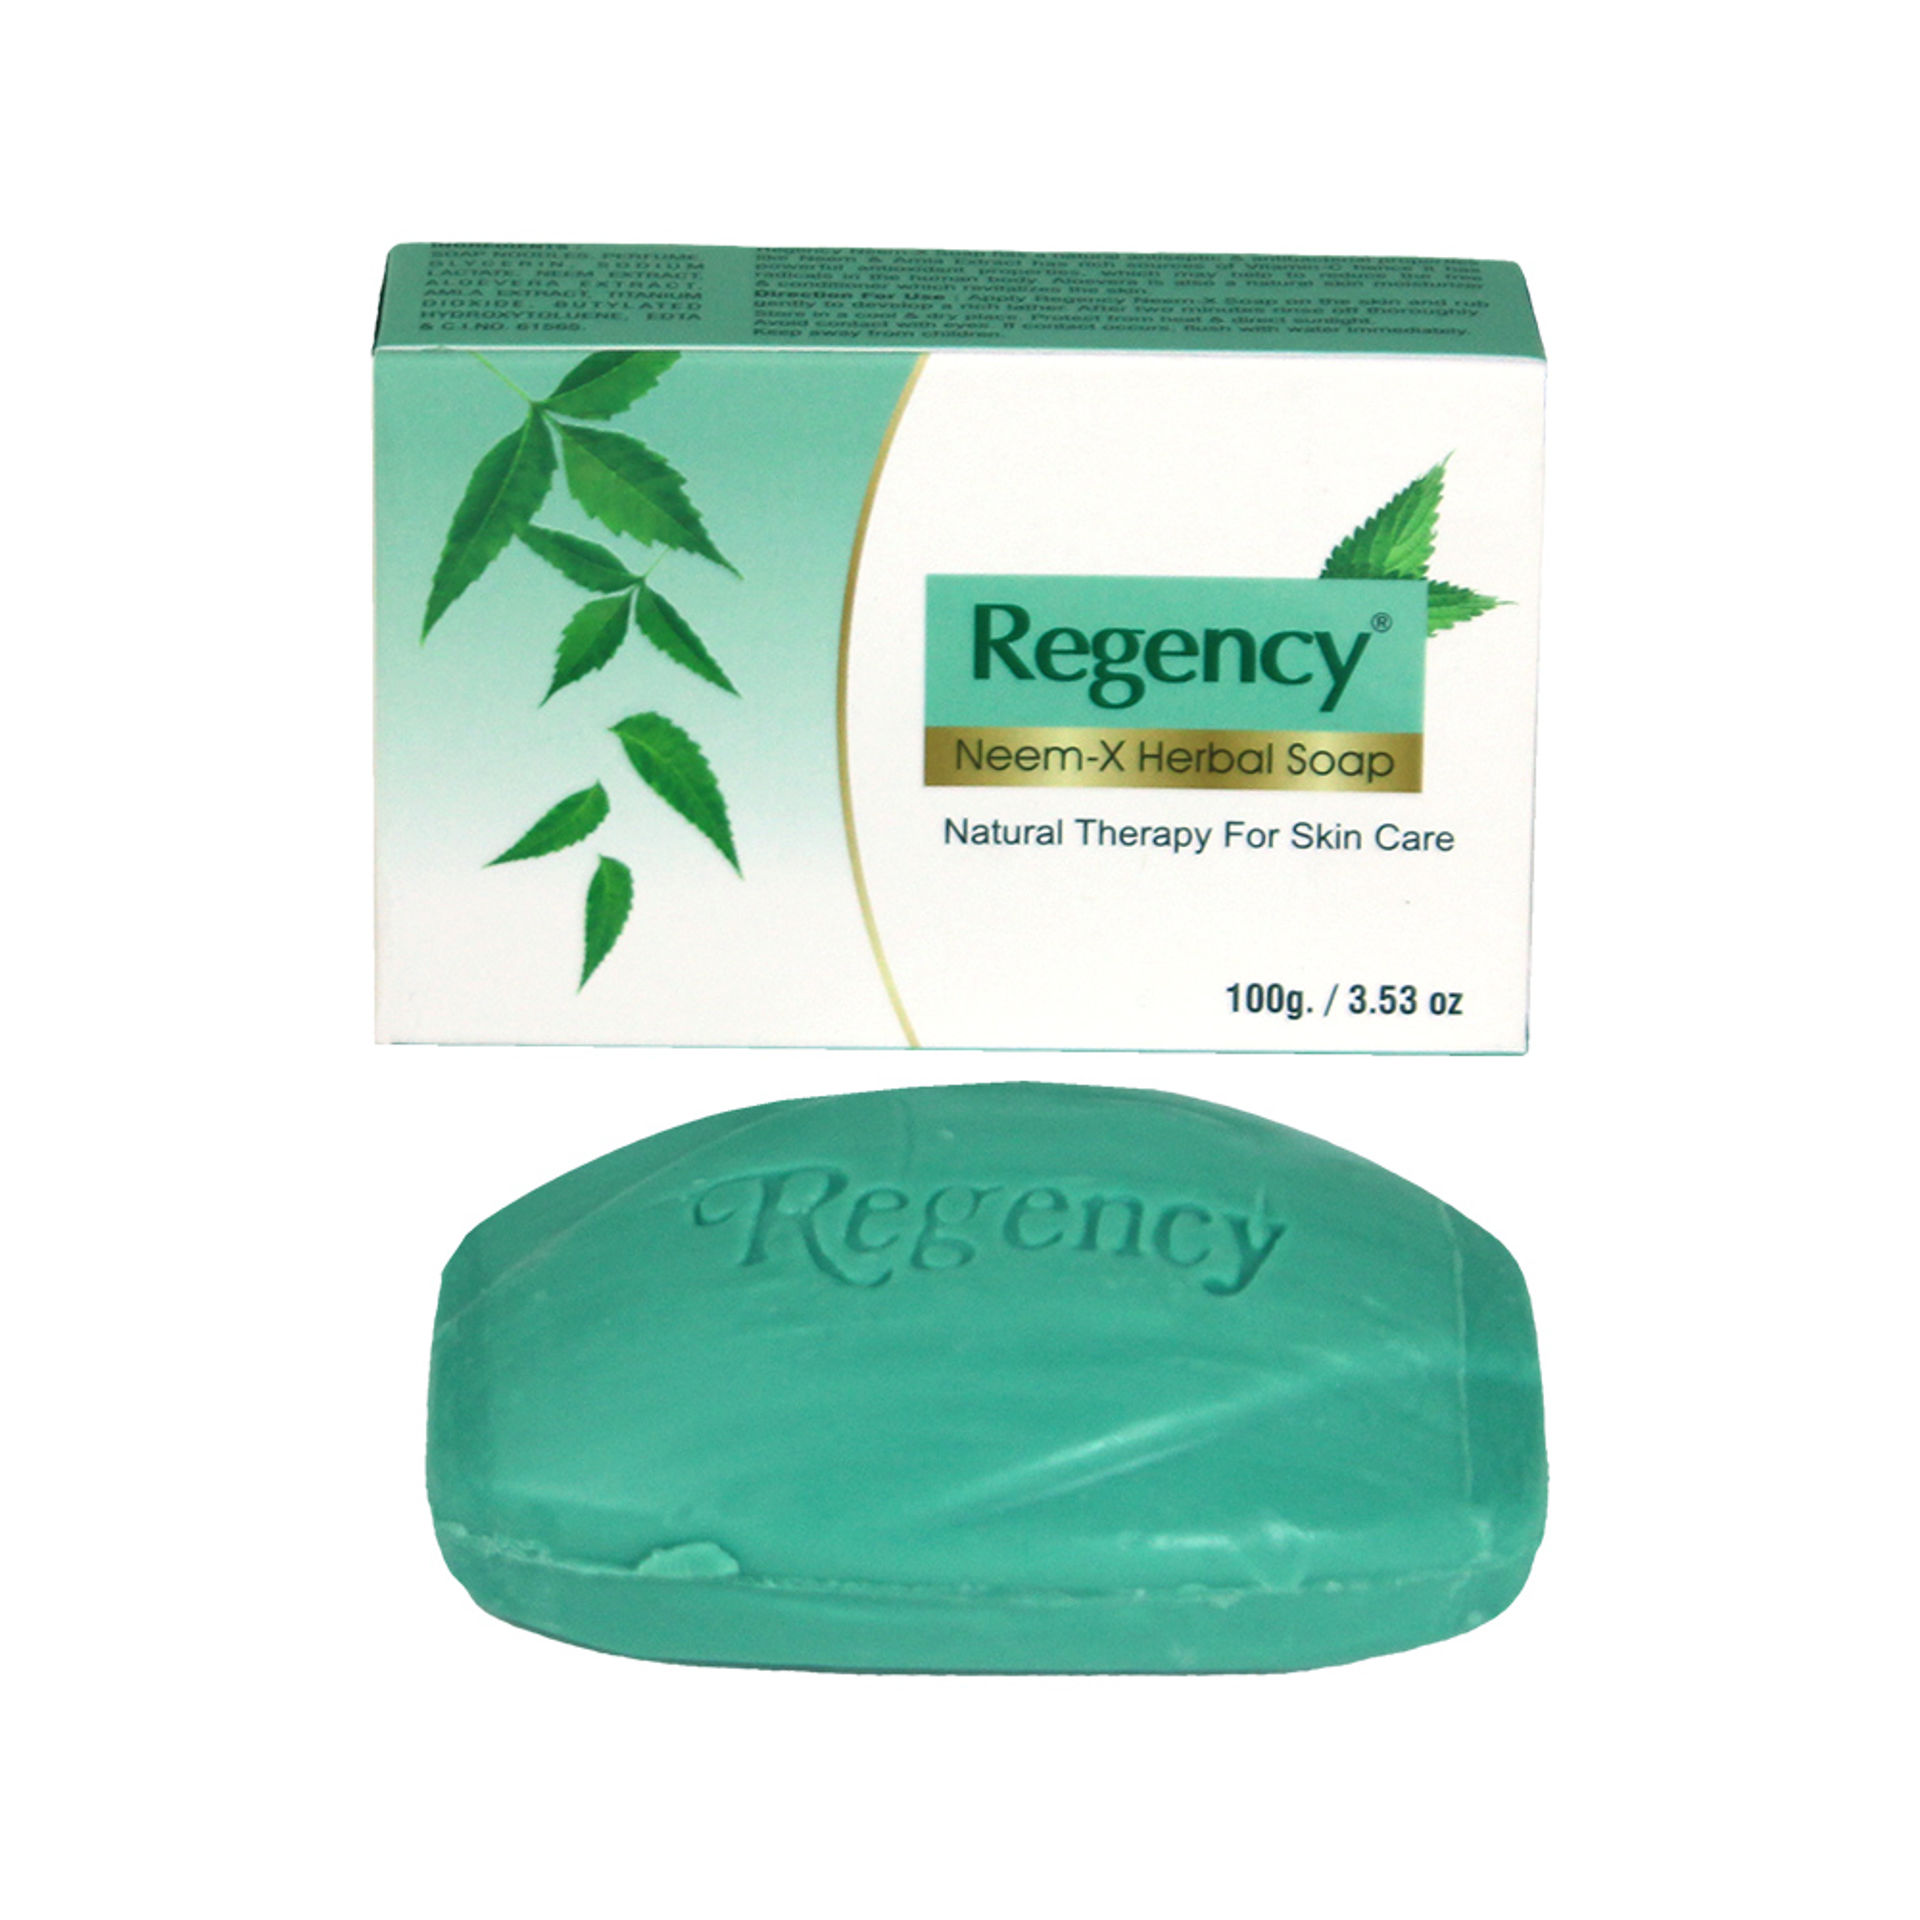 Picture of Neem-X Herbal Soap - 3.53 oz.